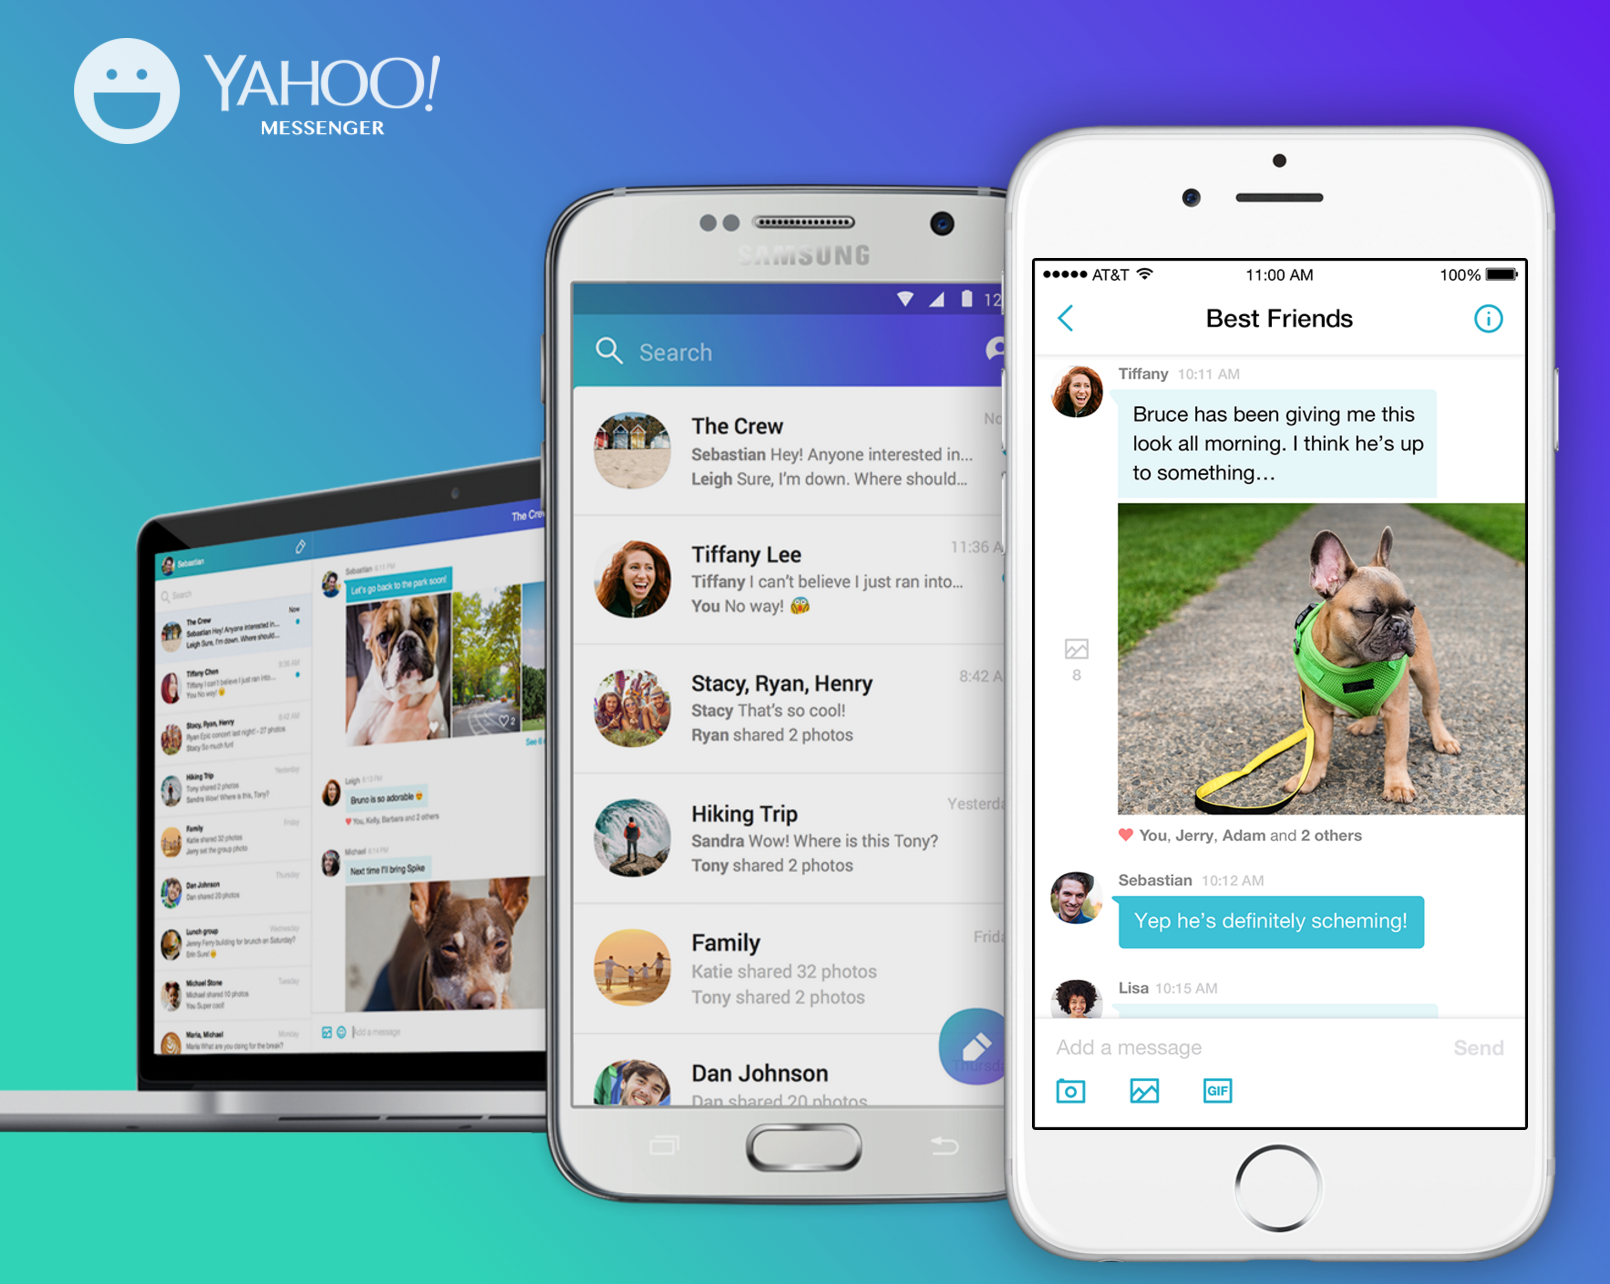 End of an era: Yahoo Messenger is being shut down next month